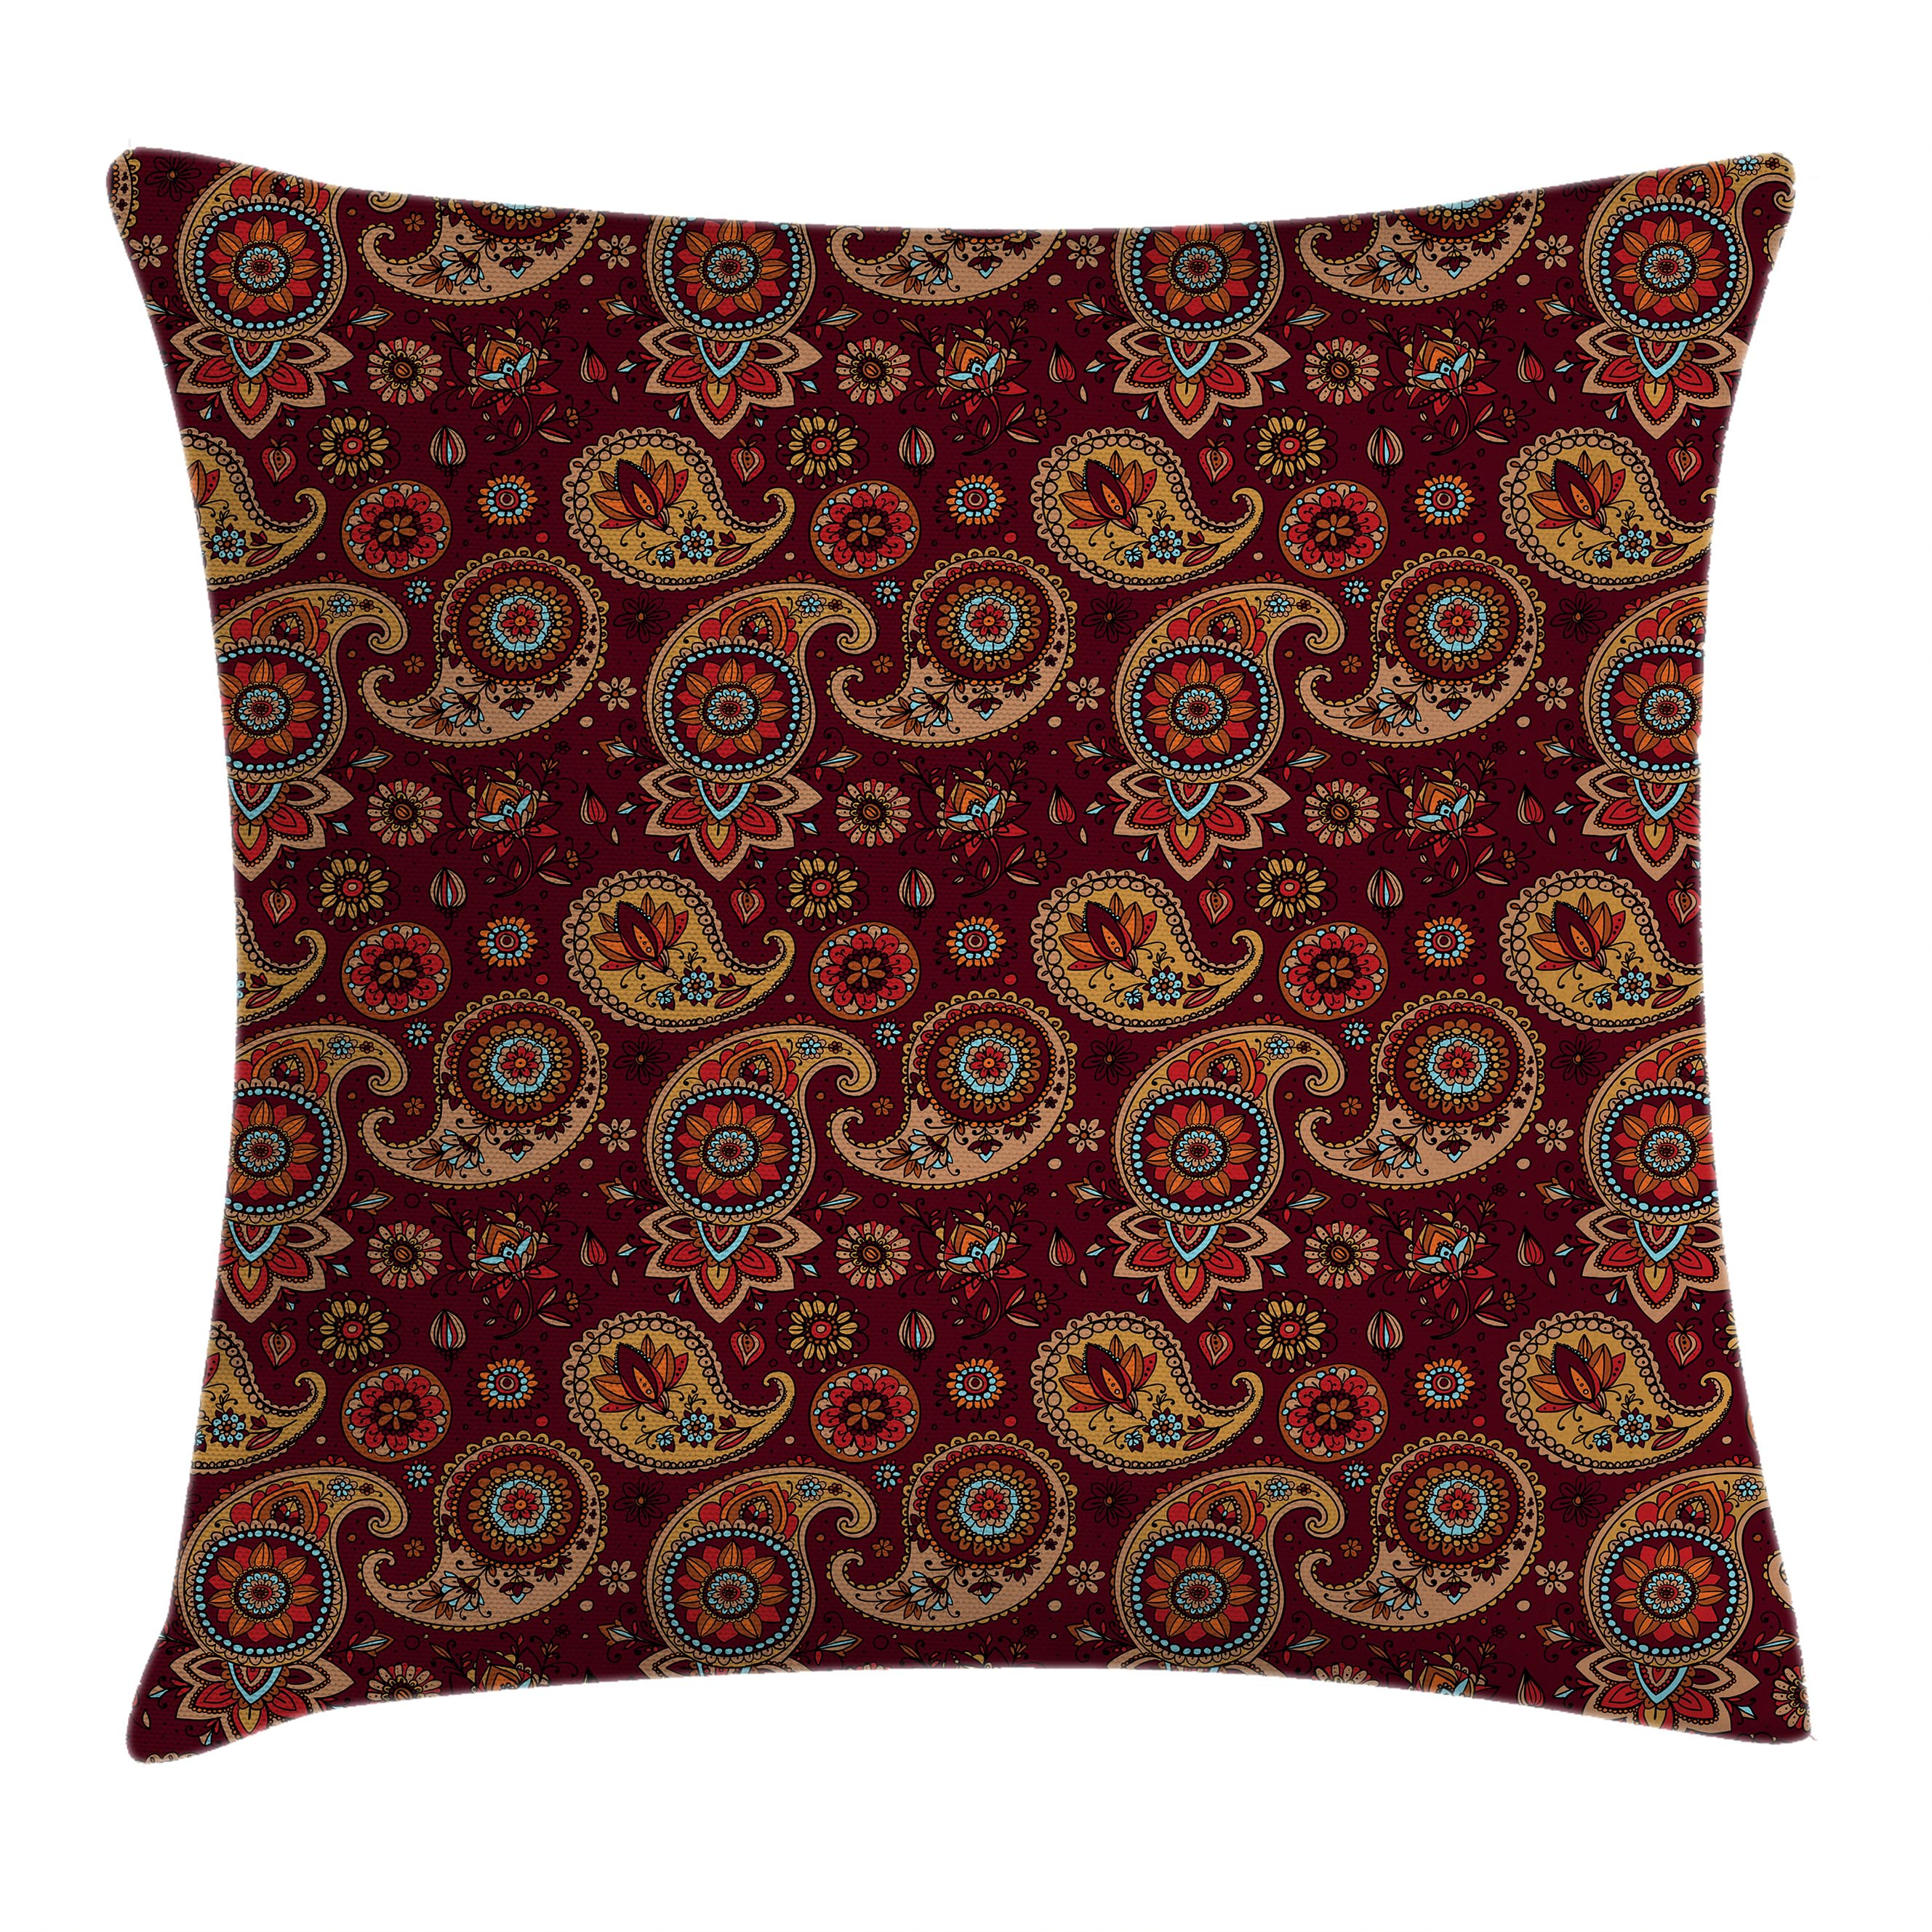 Paisley Throw Pillow Cushion Cover, Middle Eastern Culture Stylized Pattern Tribual Artwork Bohemian, Decorative Square Accent Pillow Case, 18 X 18 Inches, Chestnut Brown Mustard Teal, by Ambesonne